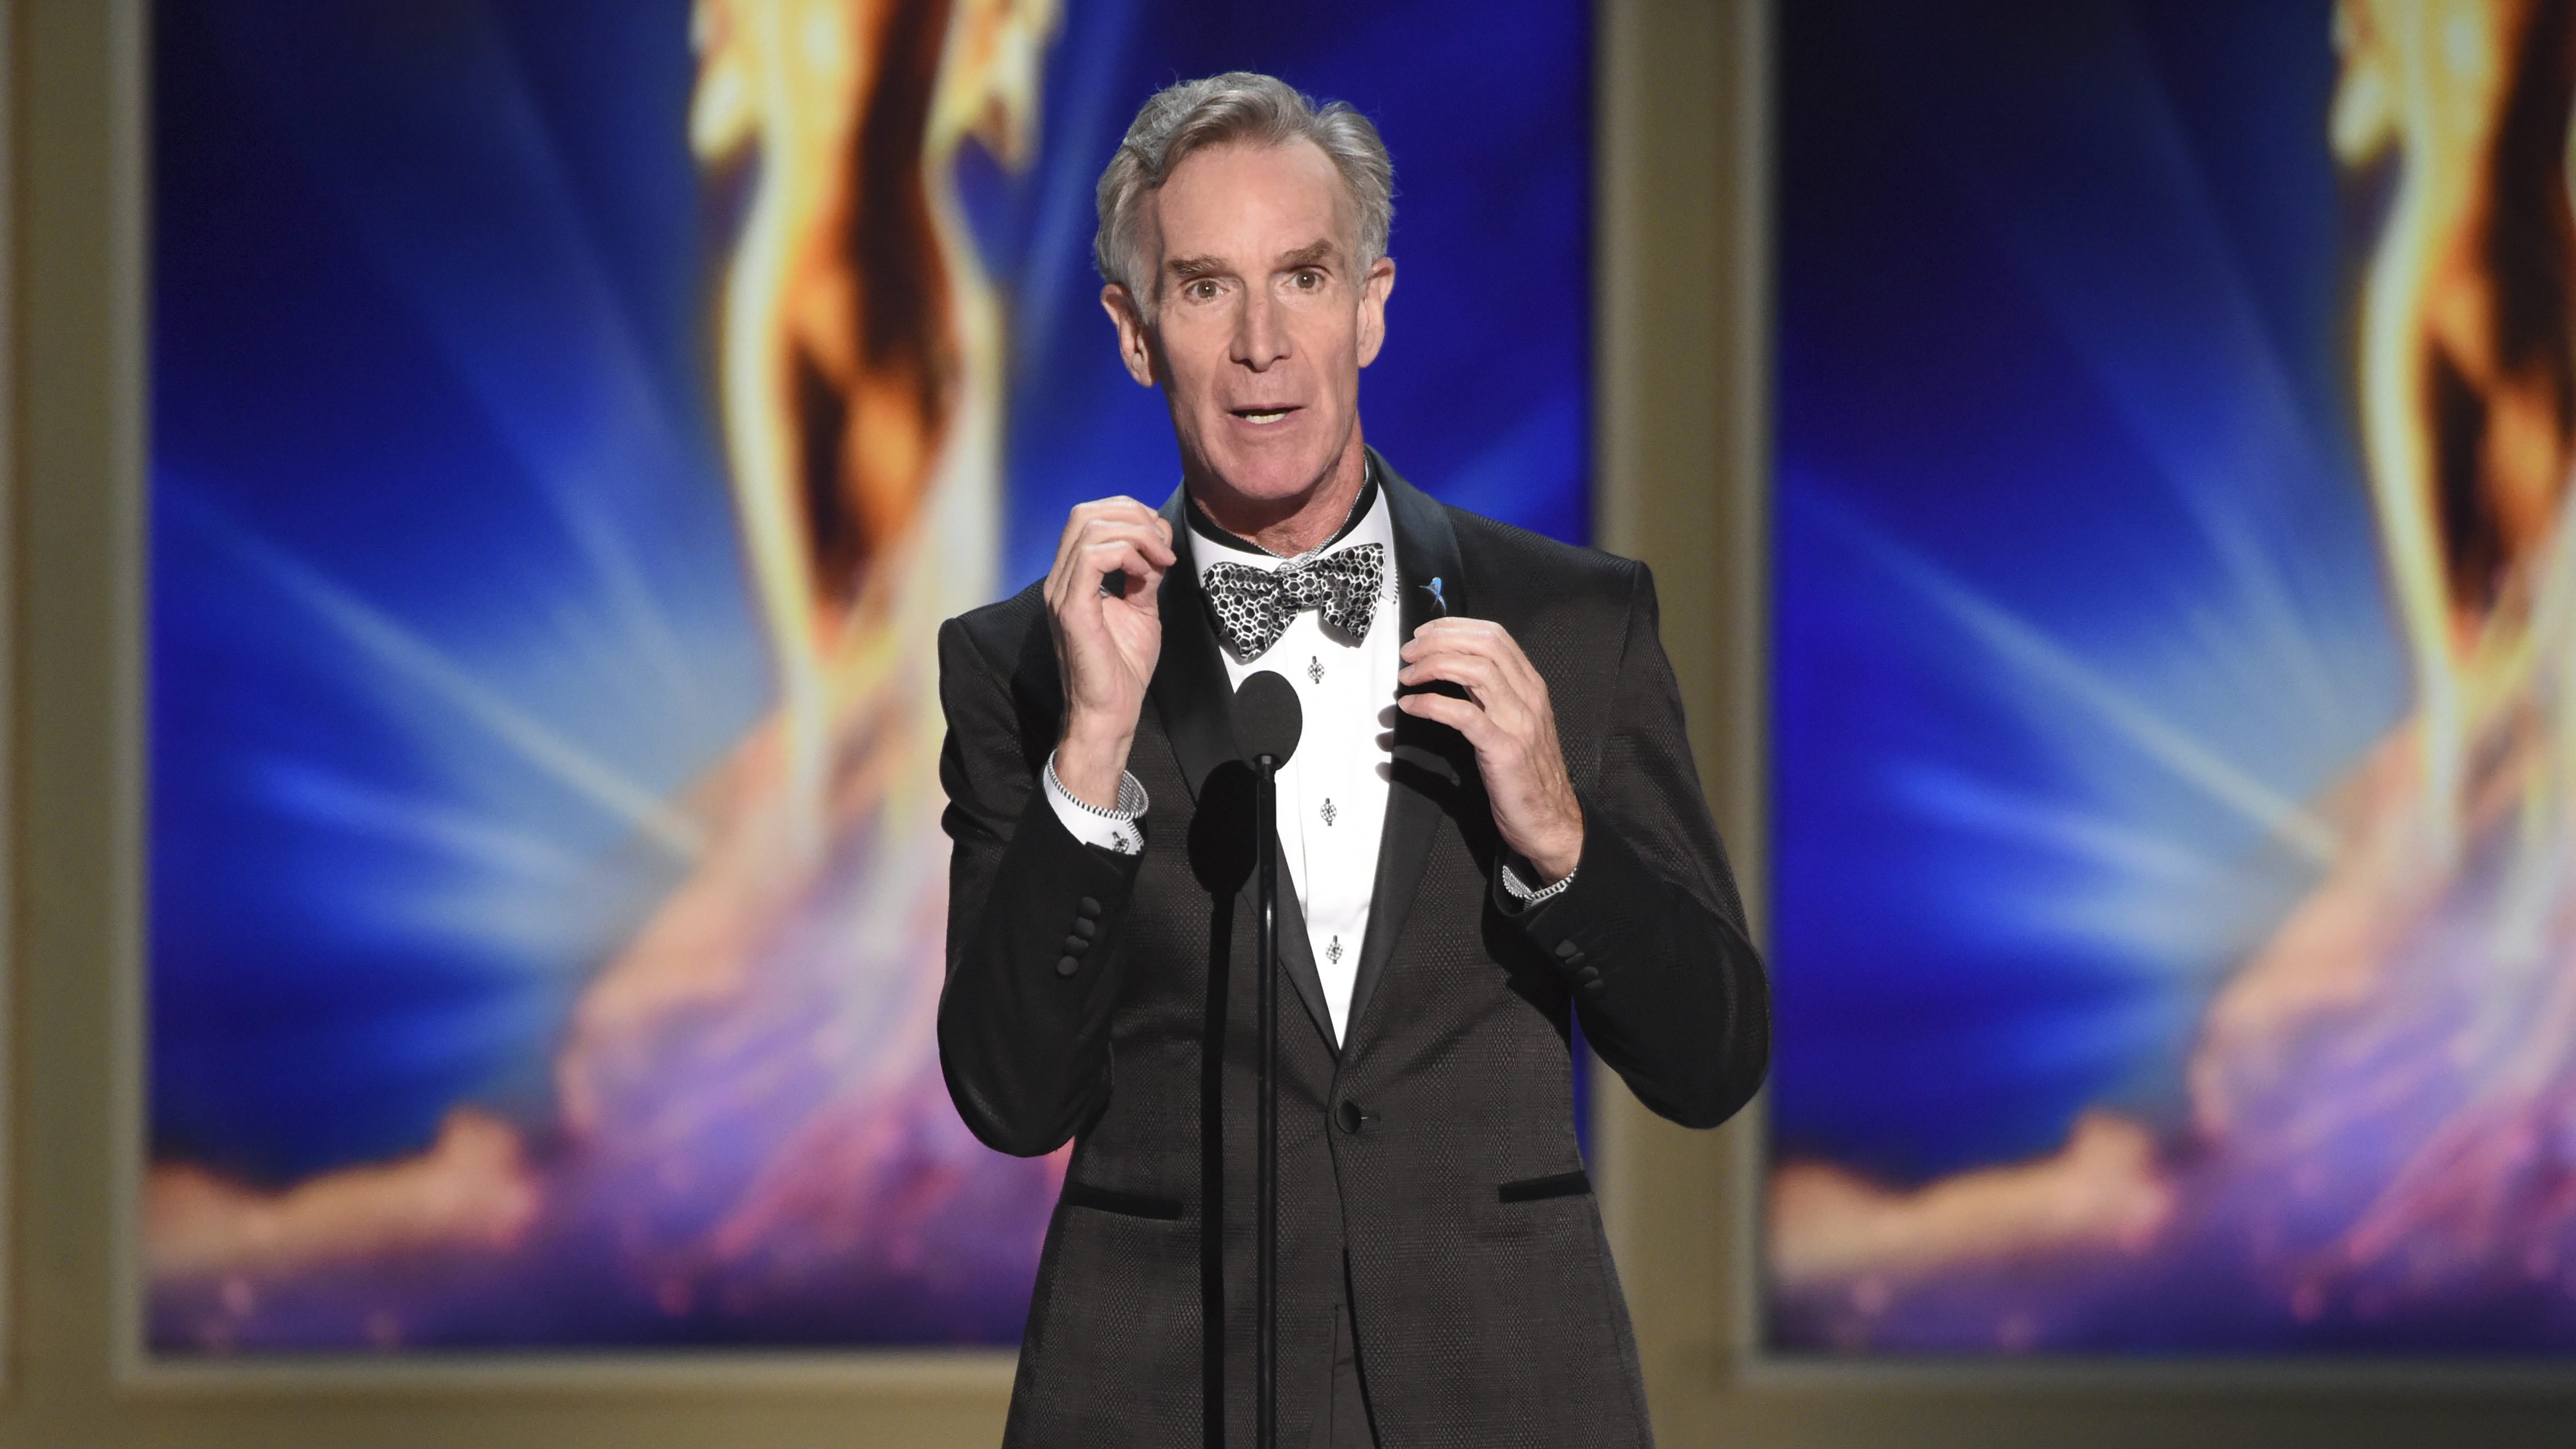 An image of Bill Nye speaking at a television event.